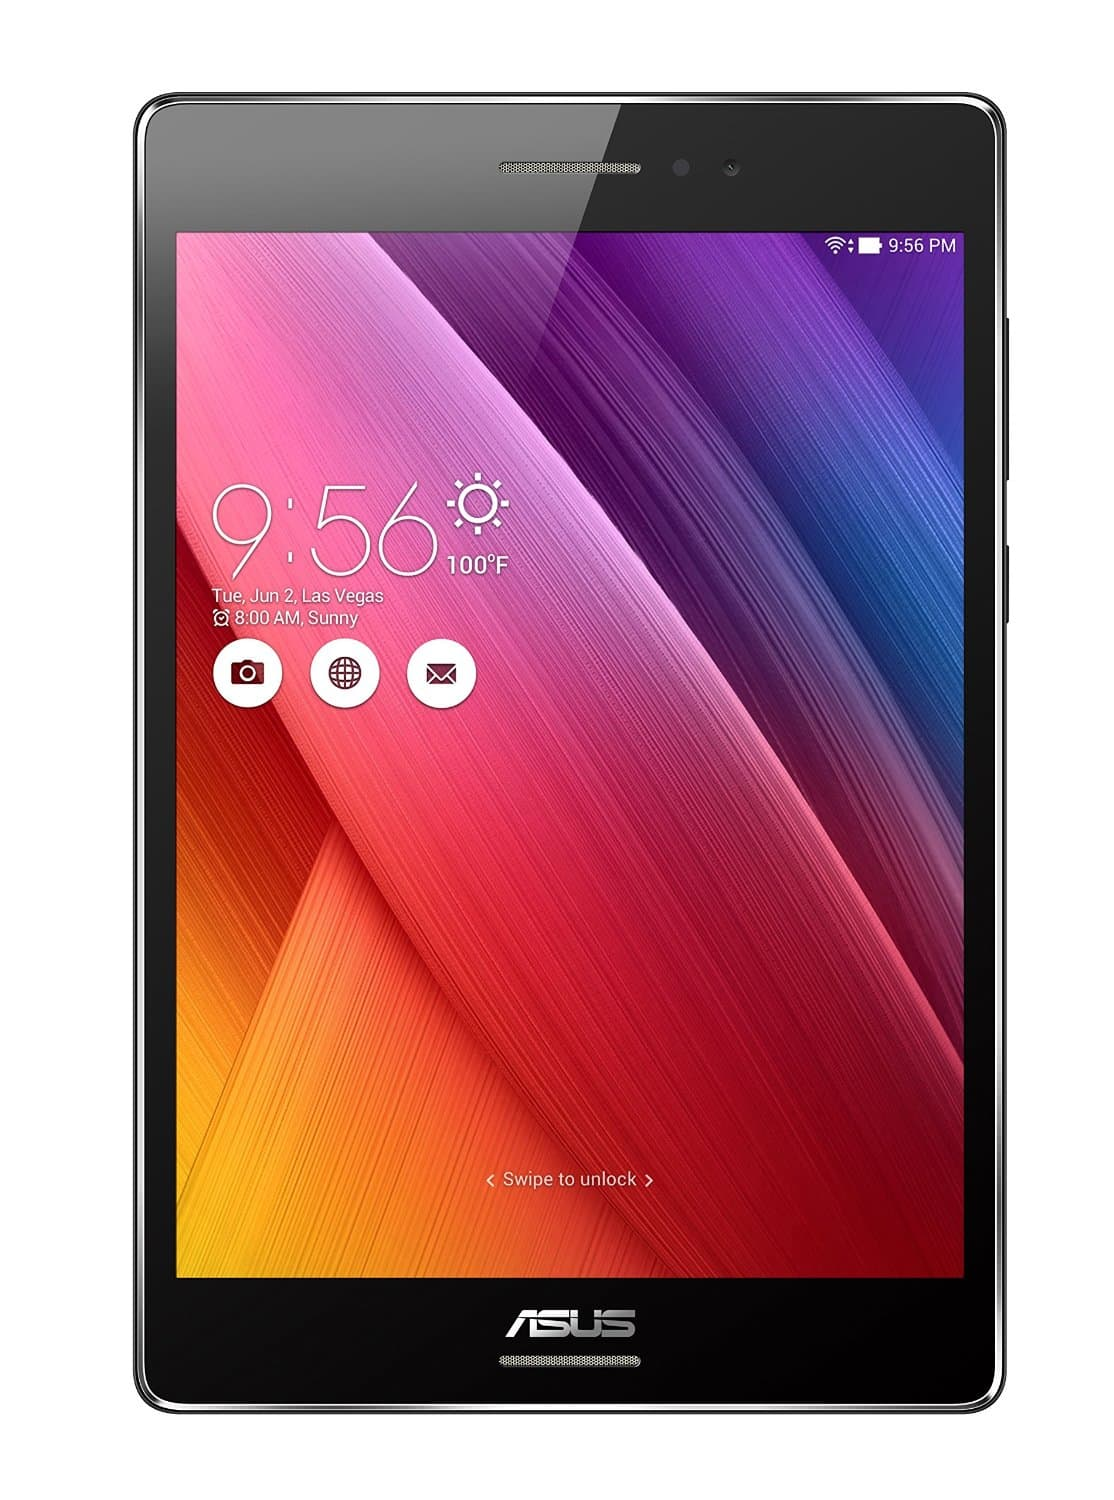 "[Best Buy] ASUS ZenPad S 8"" Android Tablet: 32GB $149.99 Again & Also 64GB $249 BACK Again (at Amazon, Adorama, B&H Photo Video, and Newegg)"